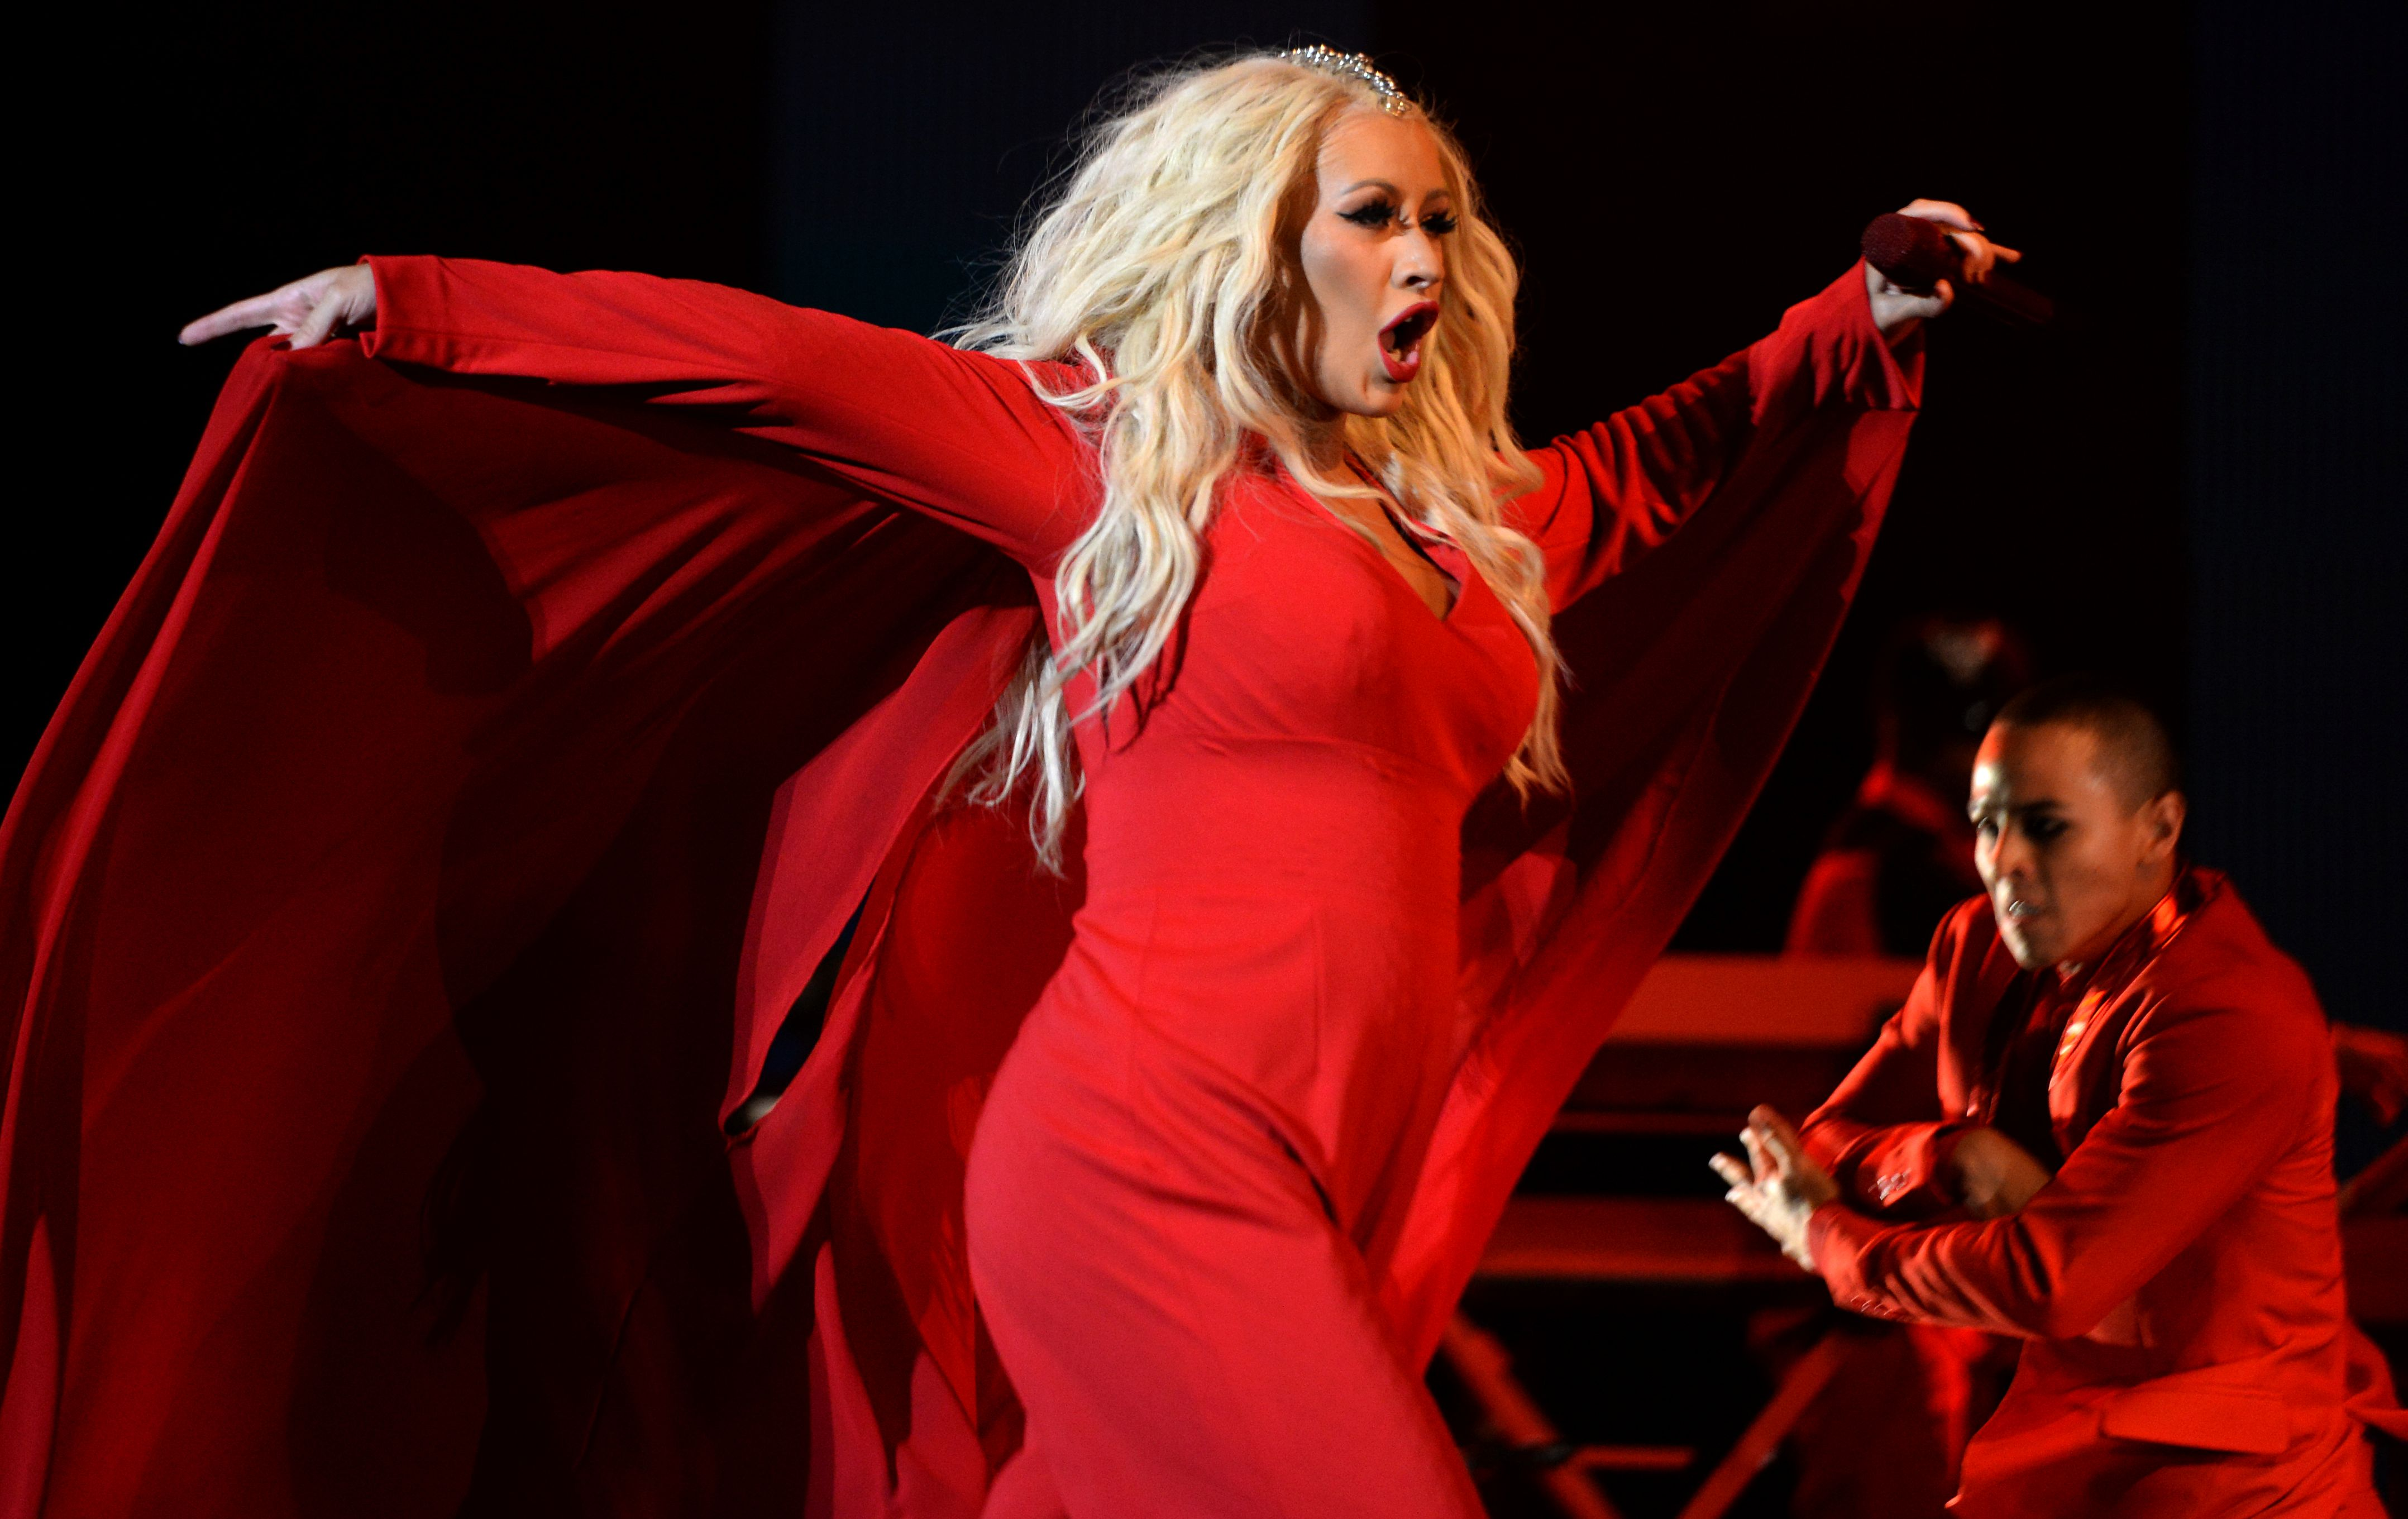 Christina Aguilera Returns Pop Star Reappears At